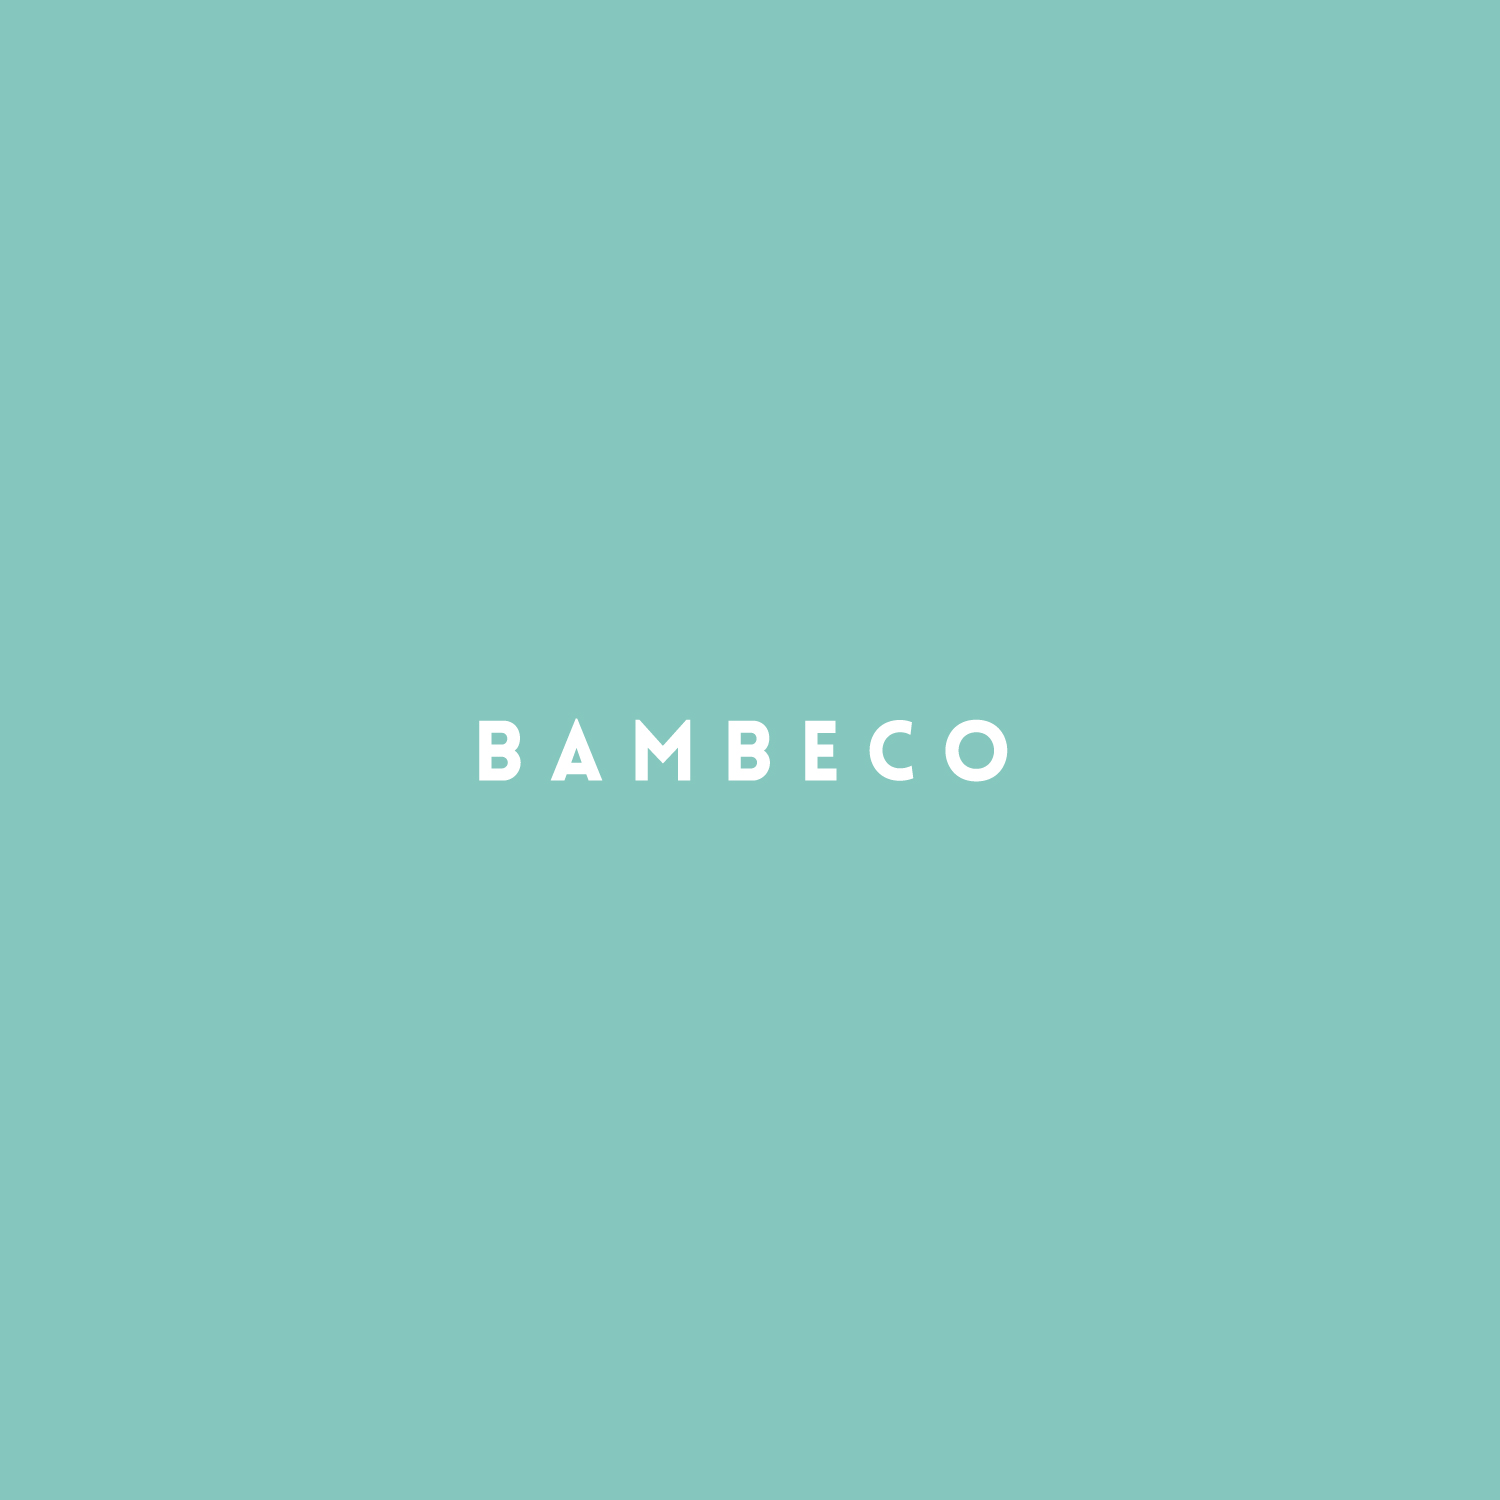 Bambeco-w-1